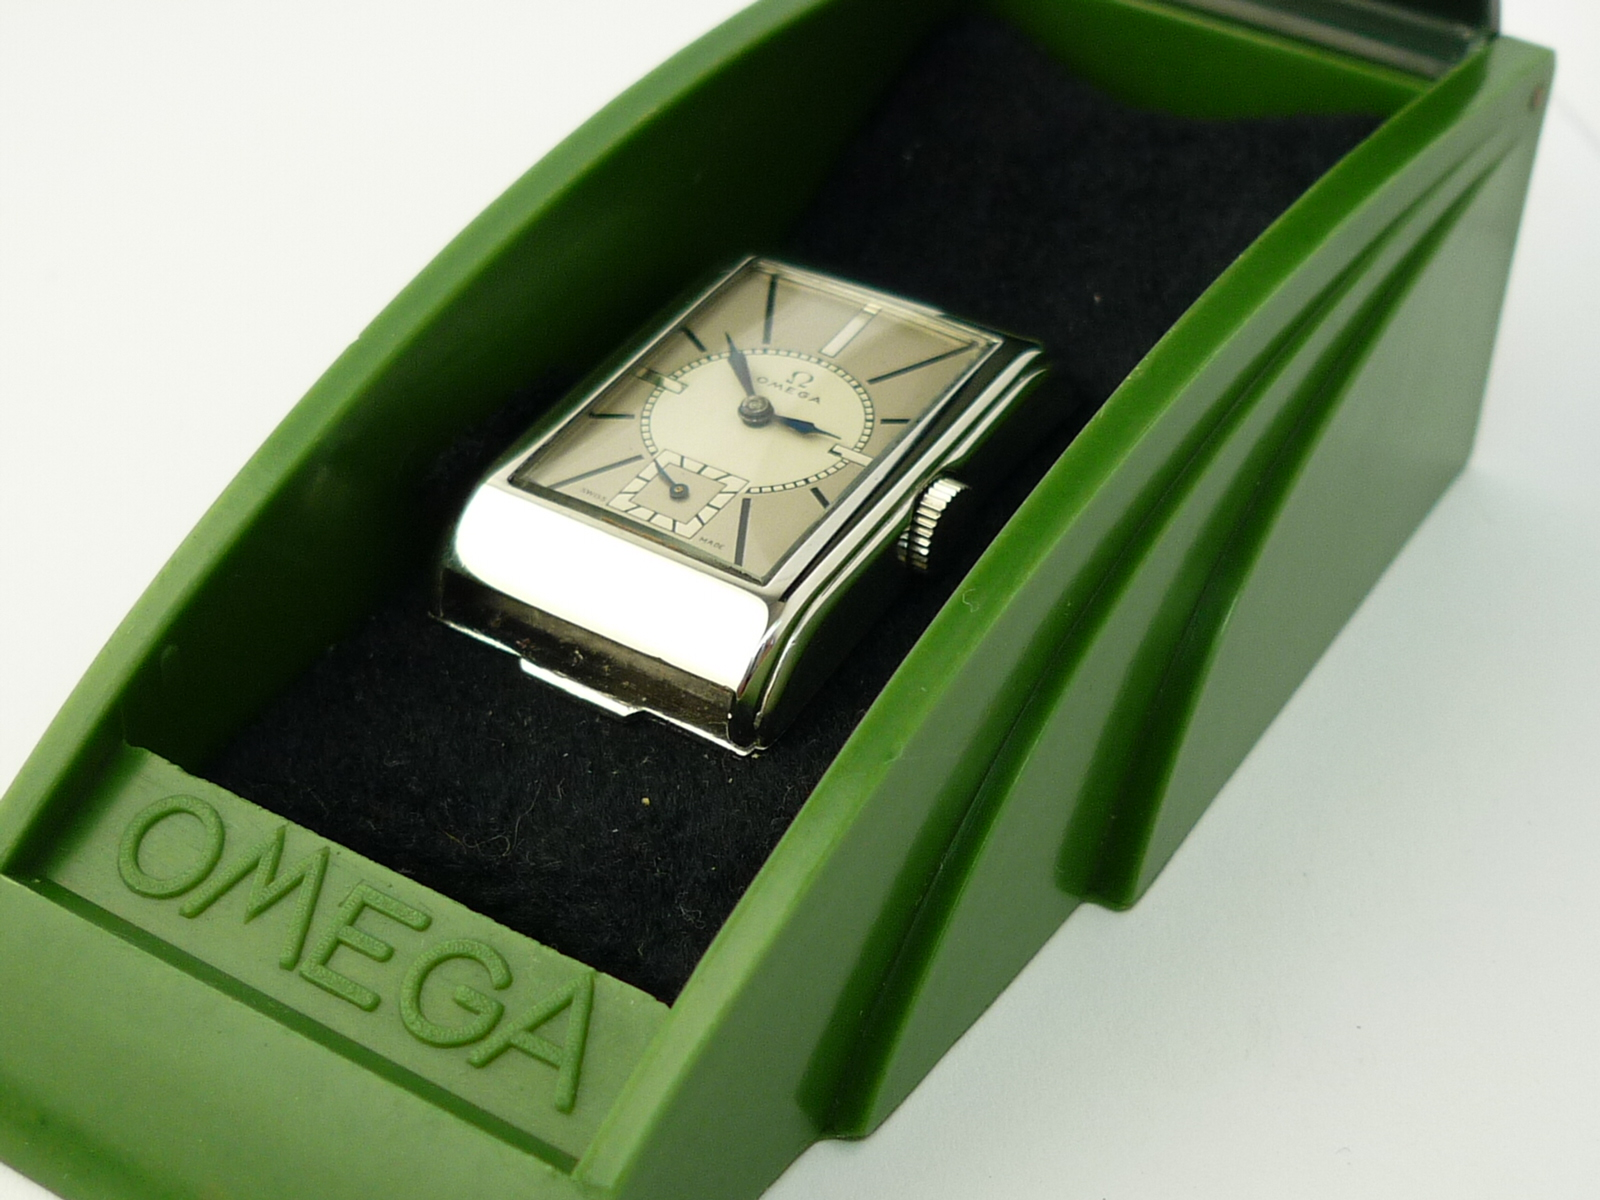 Vintage Omega Art Deco Design wristwatch (1935)